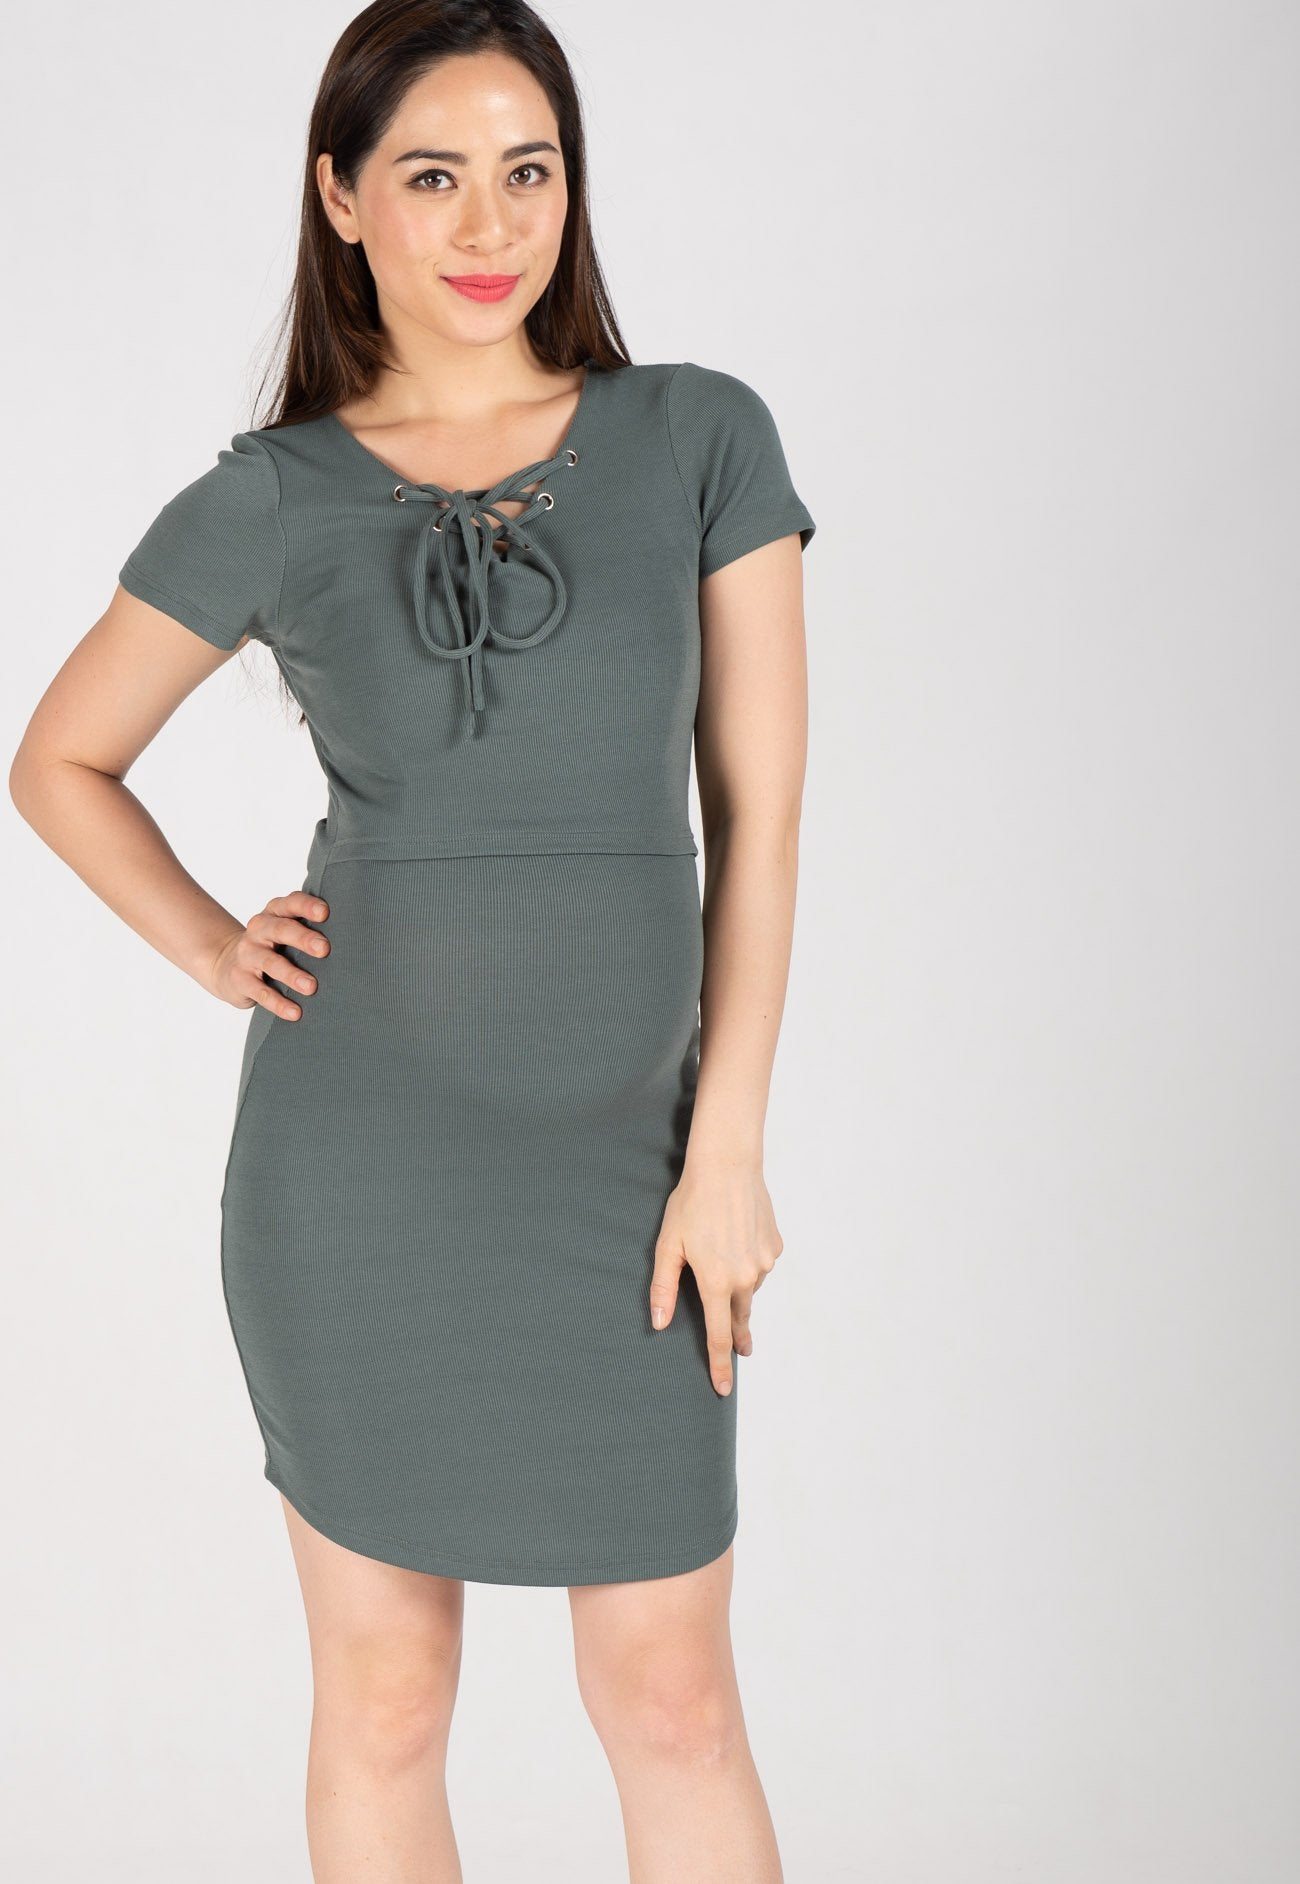 Lace Up Bodycon Nursing Dress in Green  by Jump Eat Cry - Maternity and nursing wear